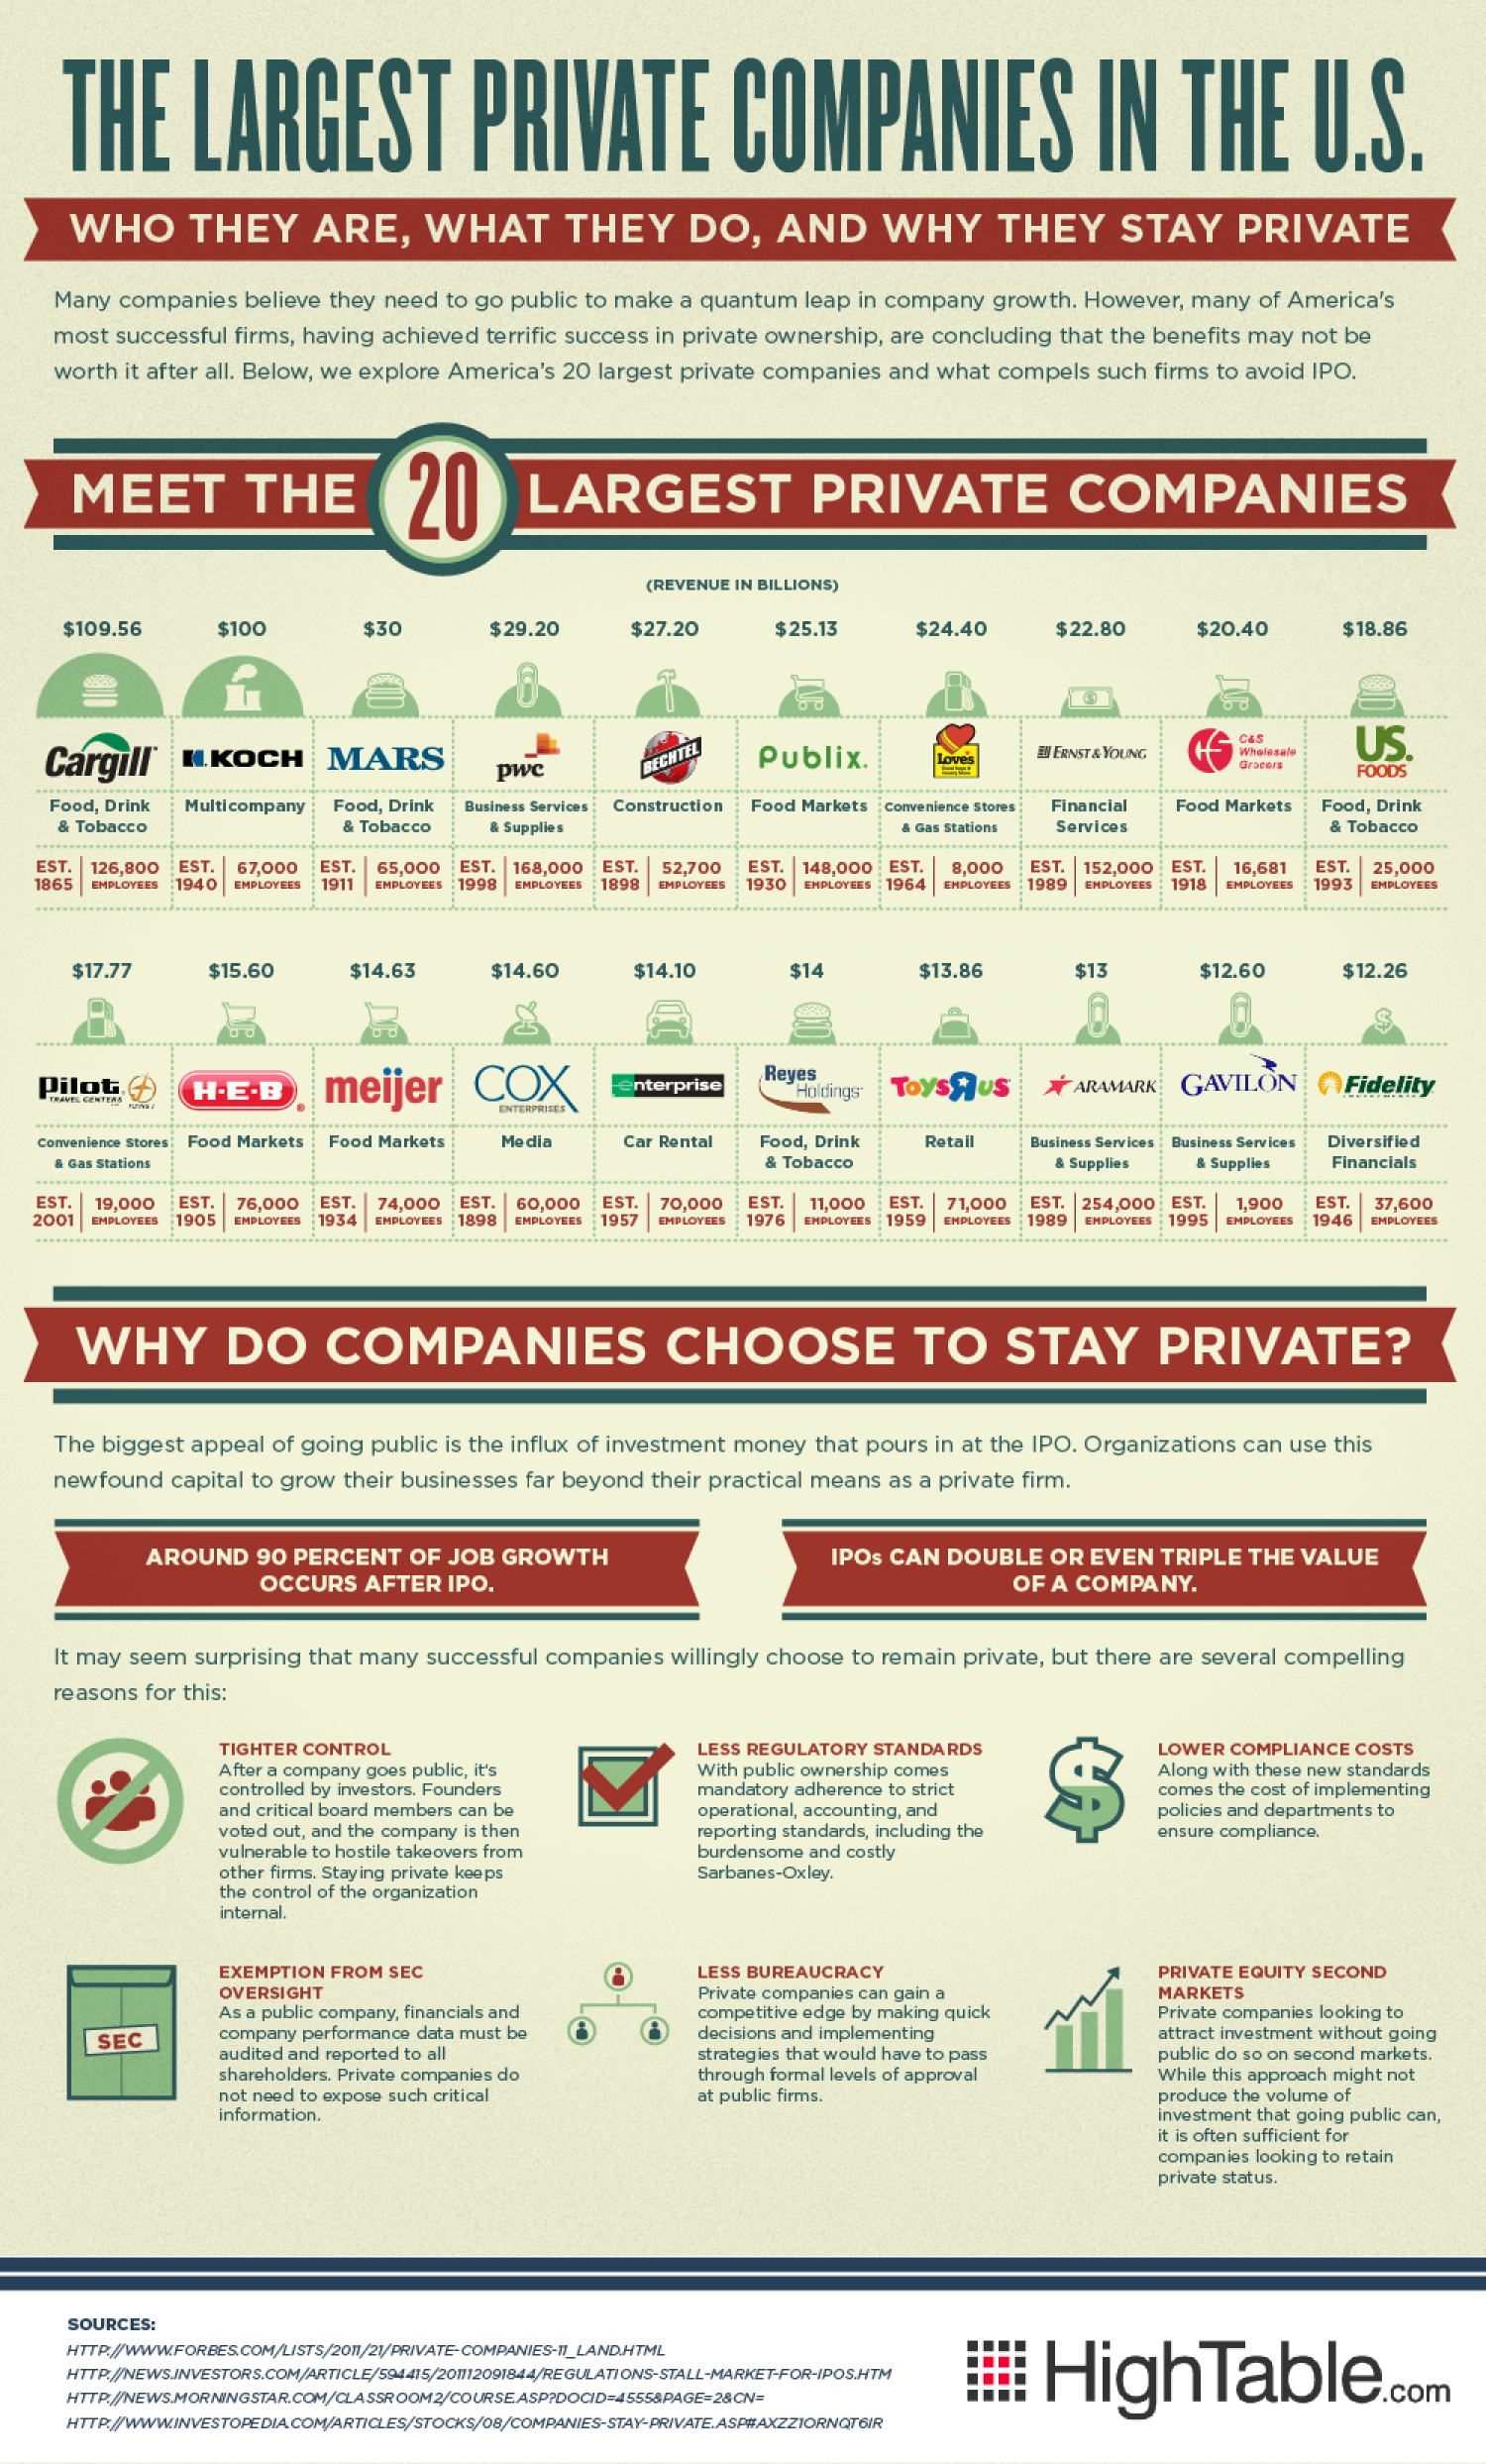 The Largest Private Companies in the U.S. Infographic